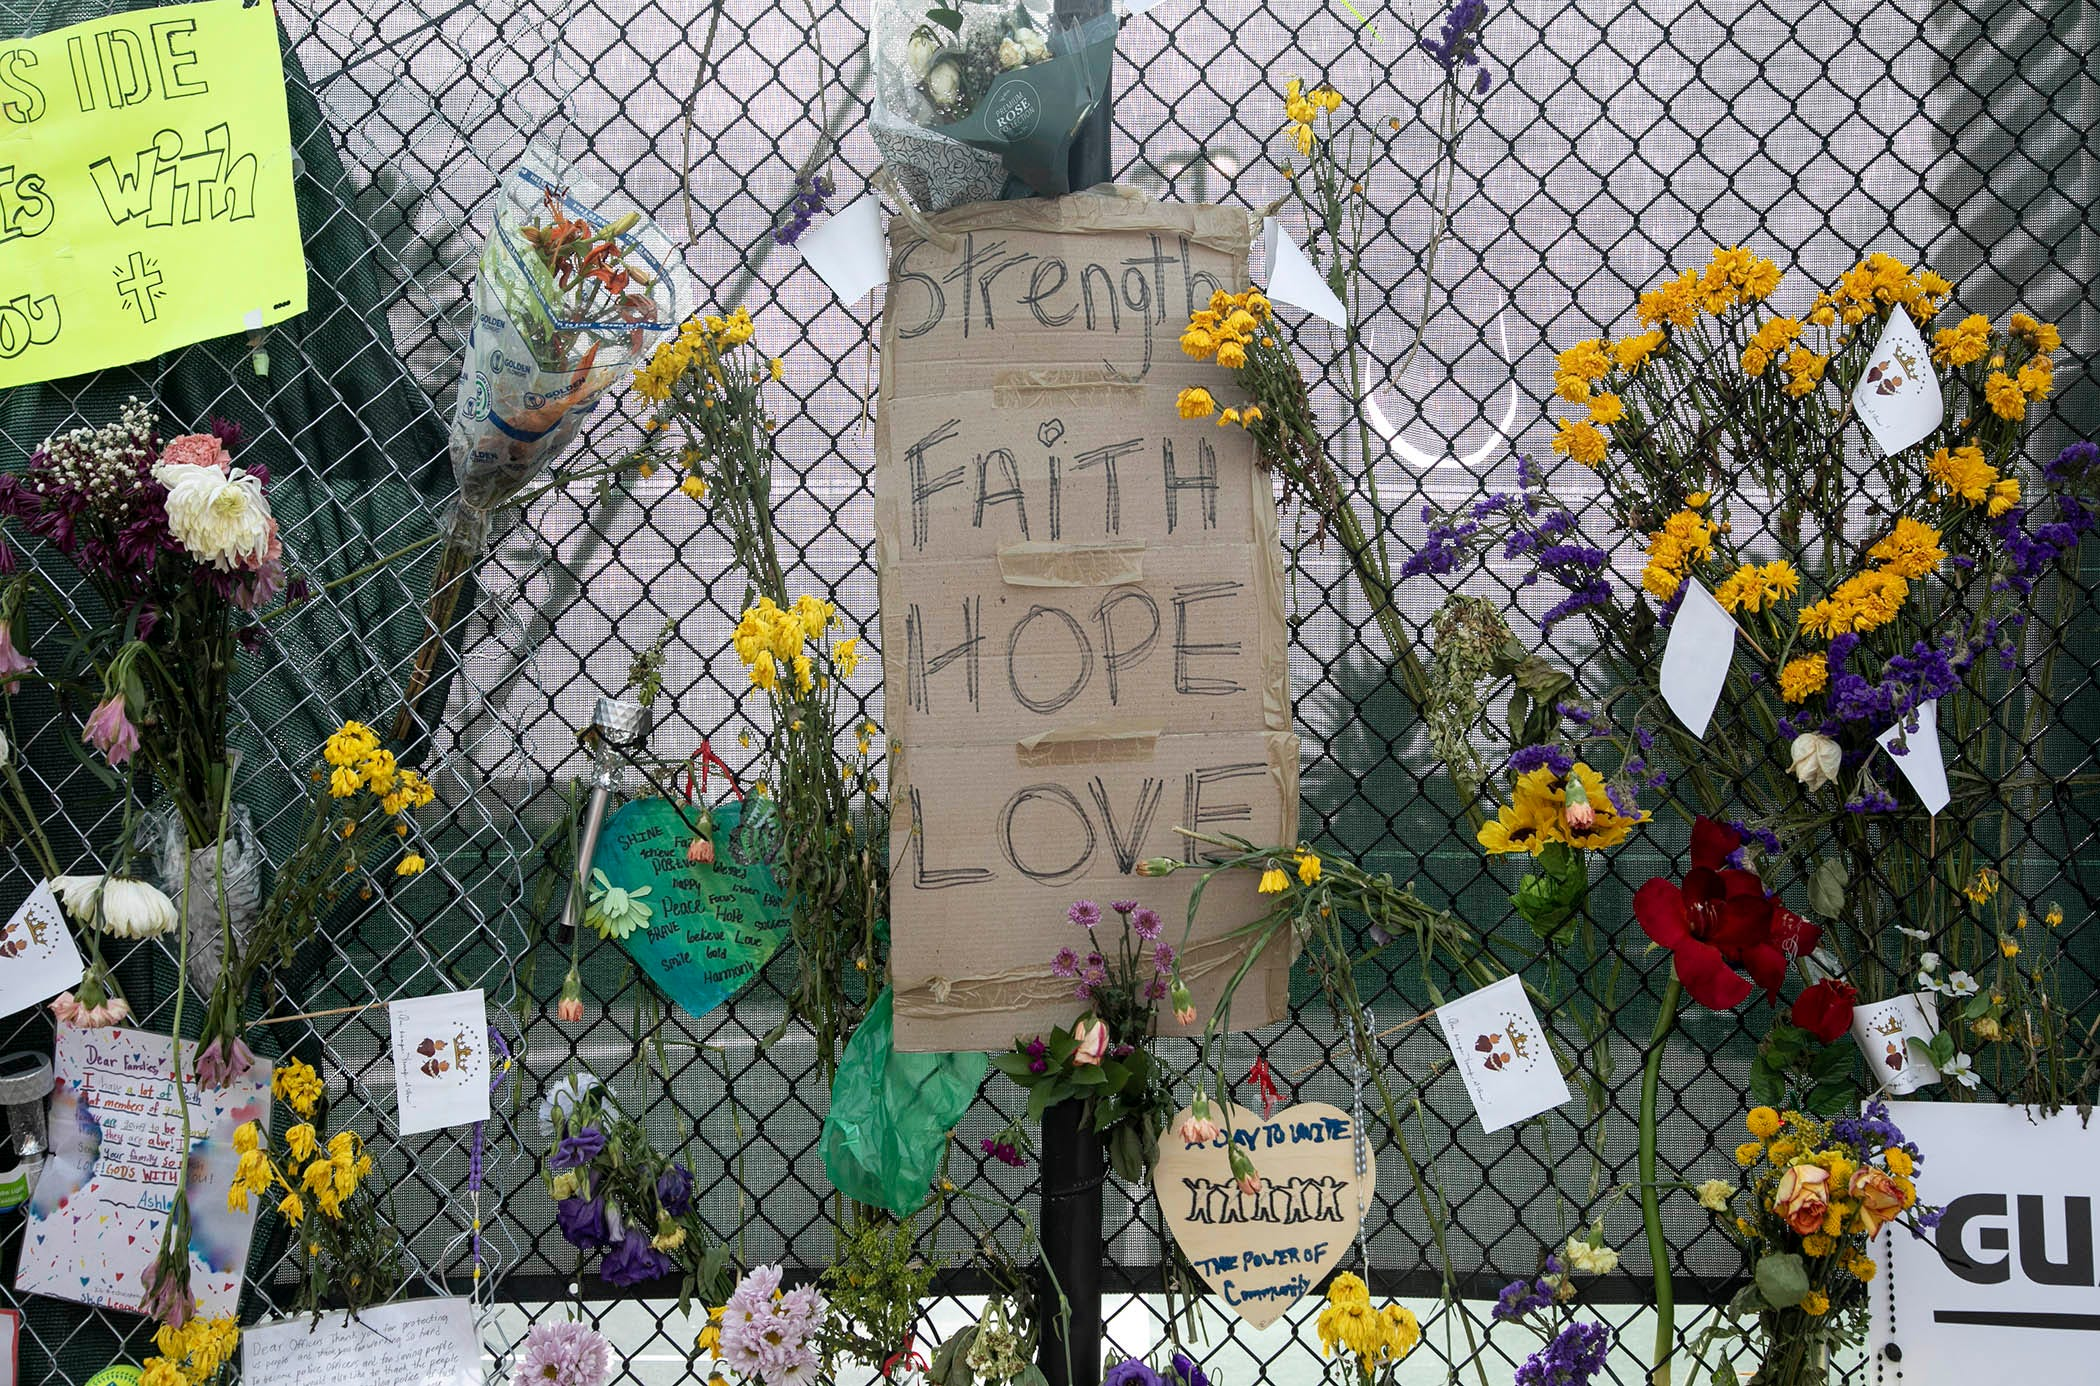 Flowers, signs and notes left in memory of victims of the Champlain Towers South collapse in Surfside, Florida Friday, July 9, 2021.